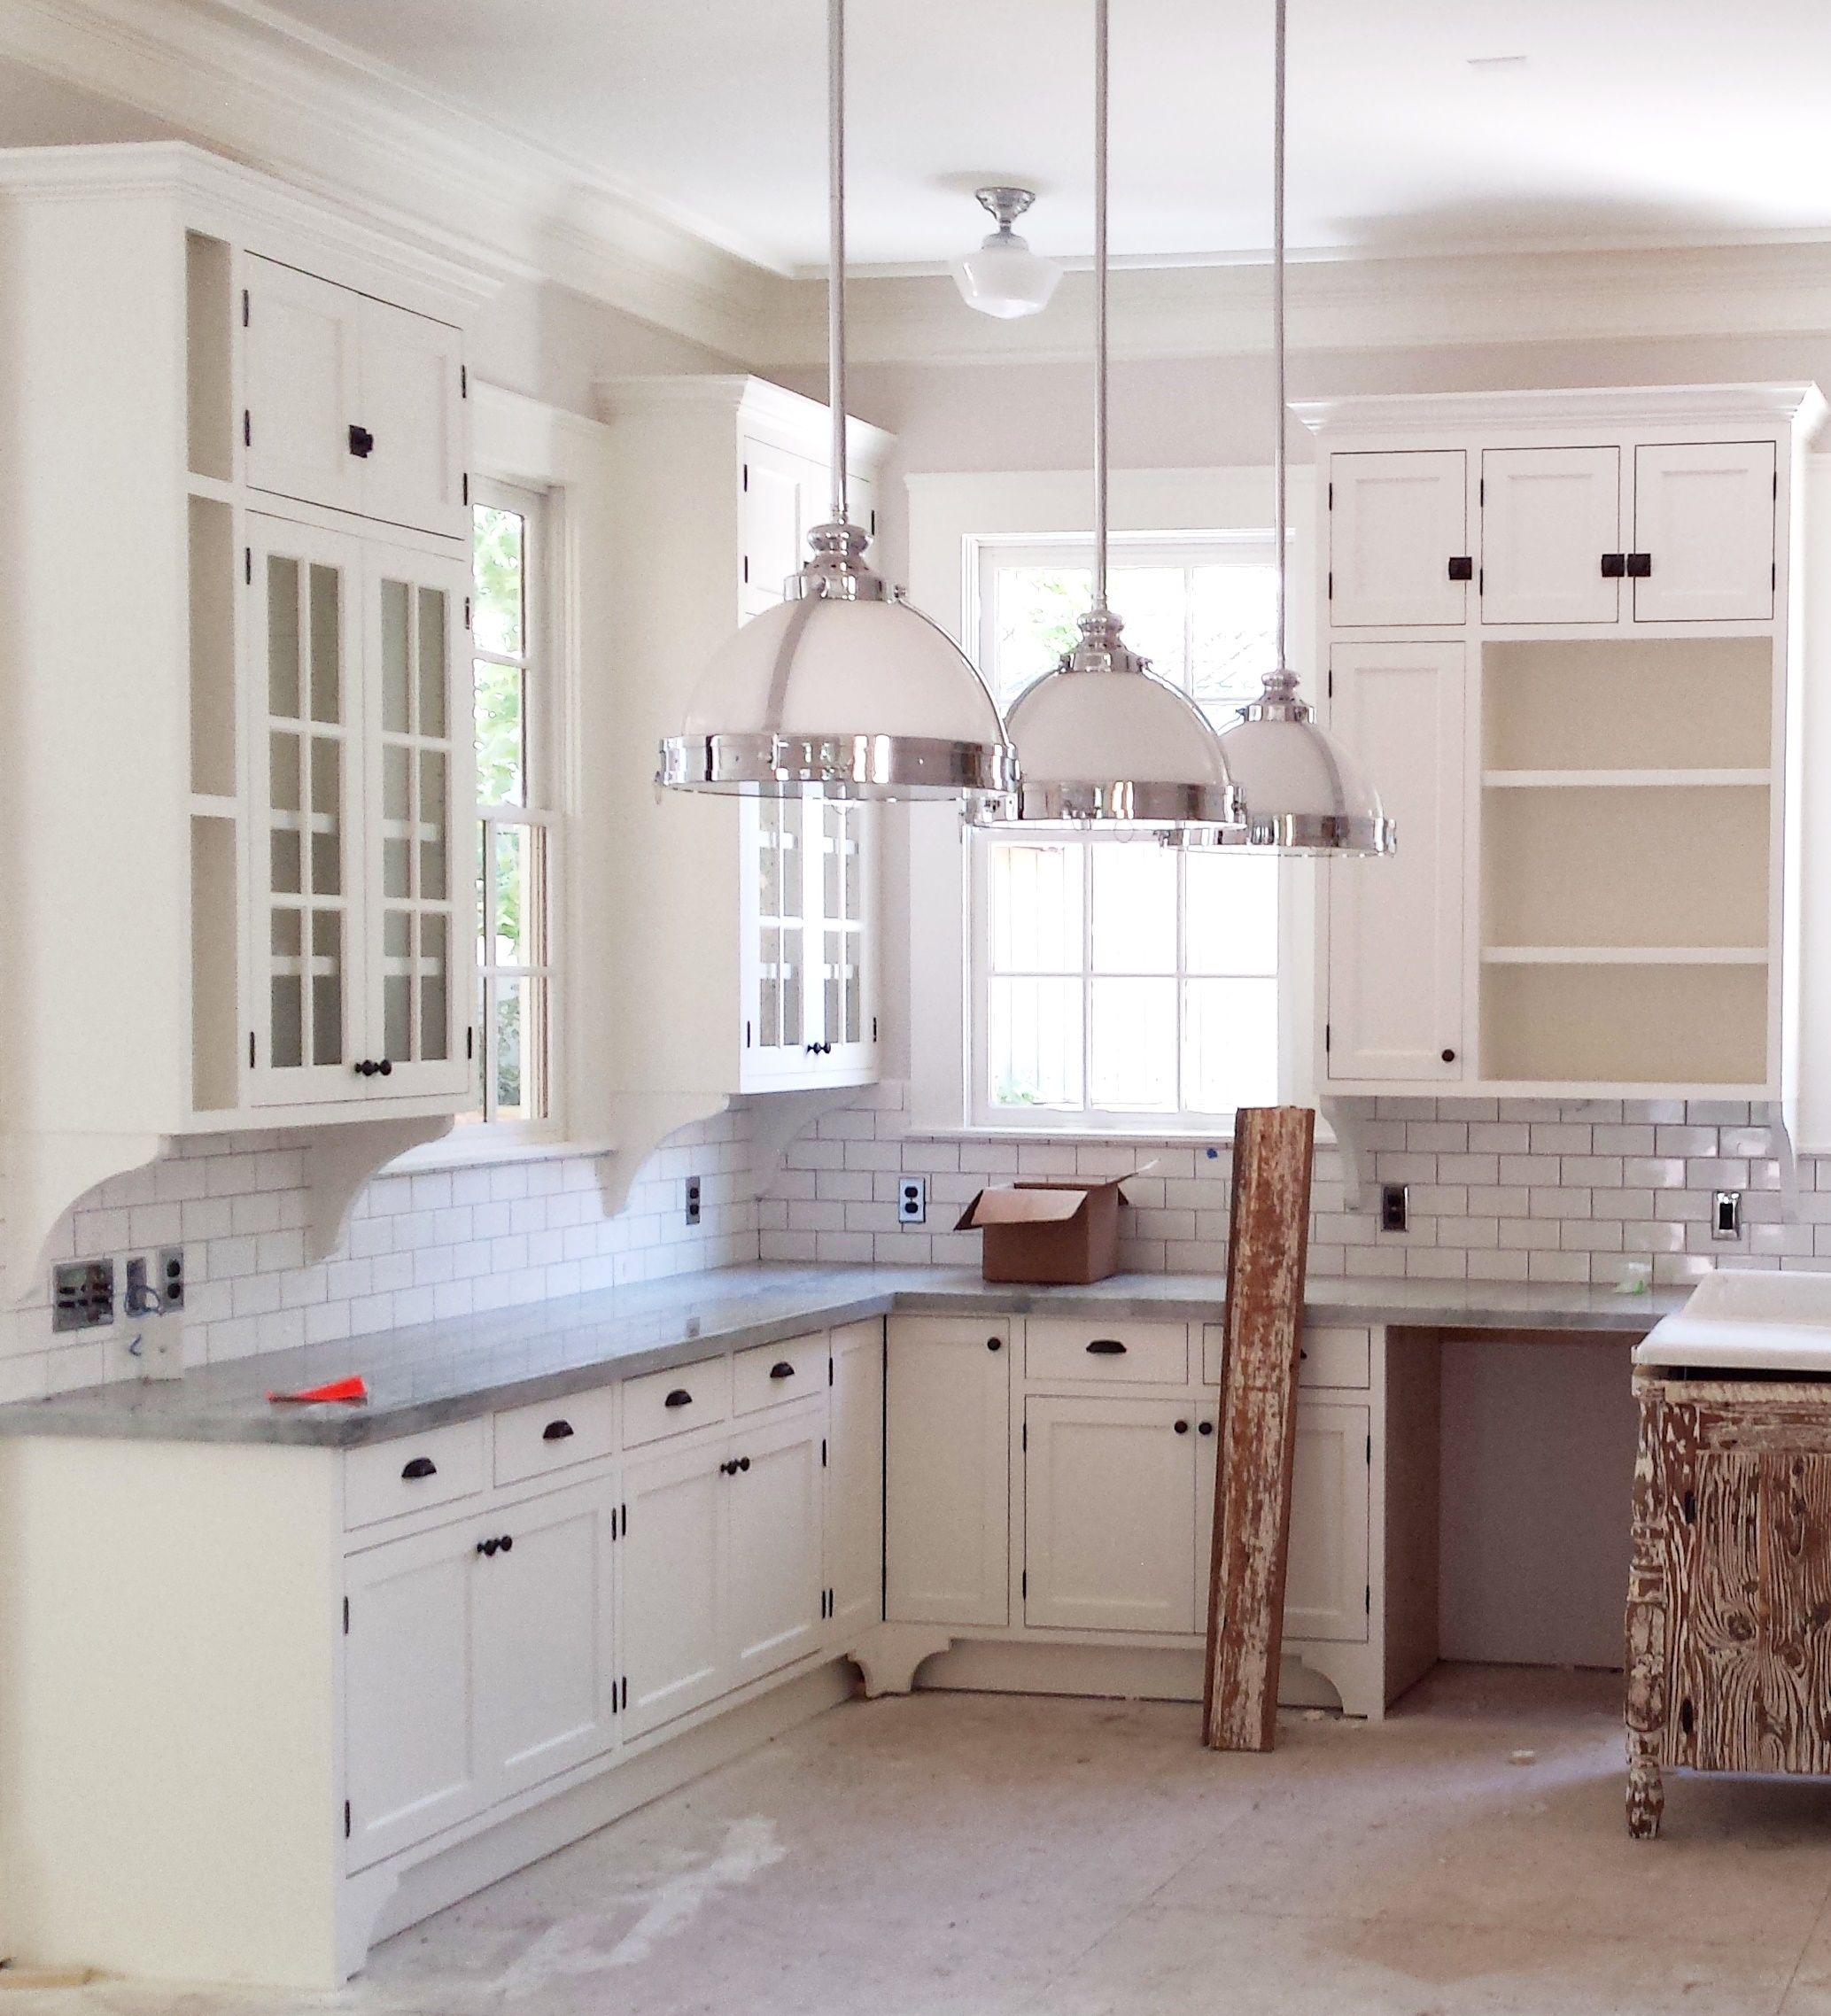 Custom vintage style kitchen for new house in the Heights